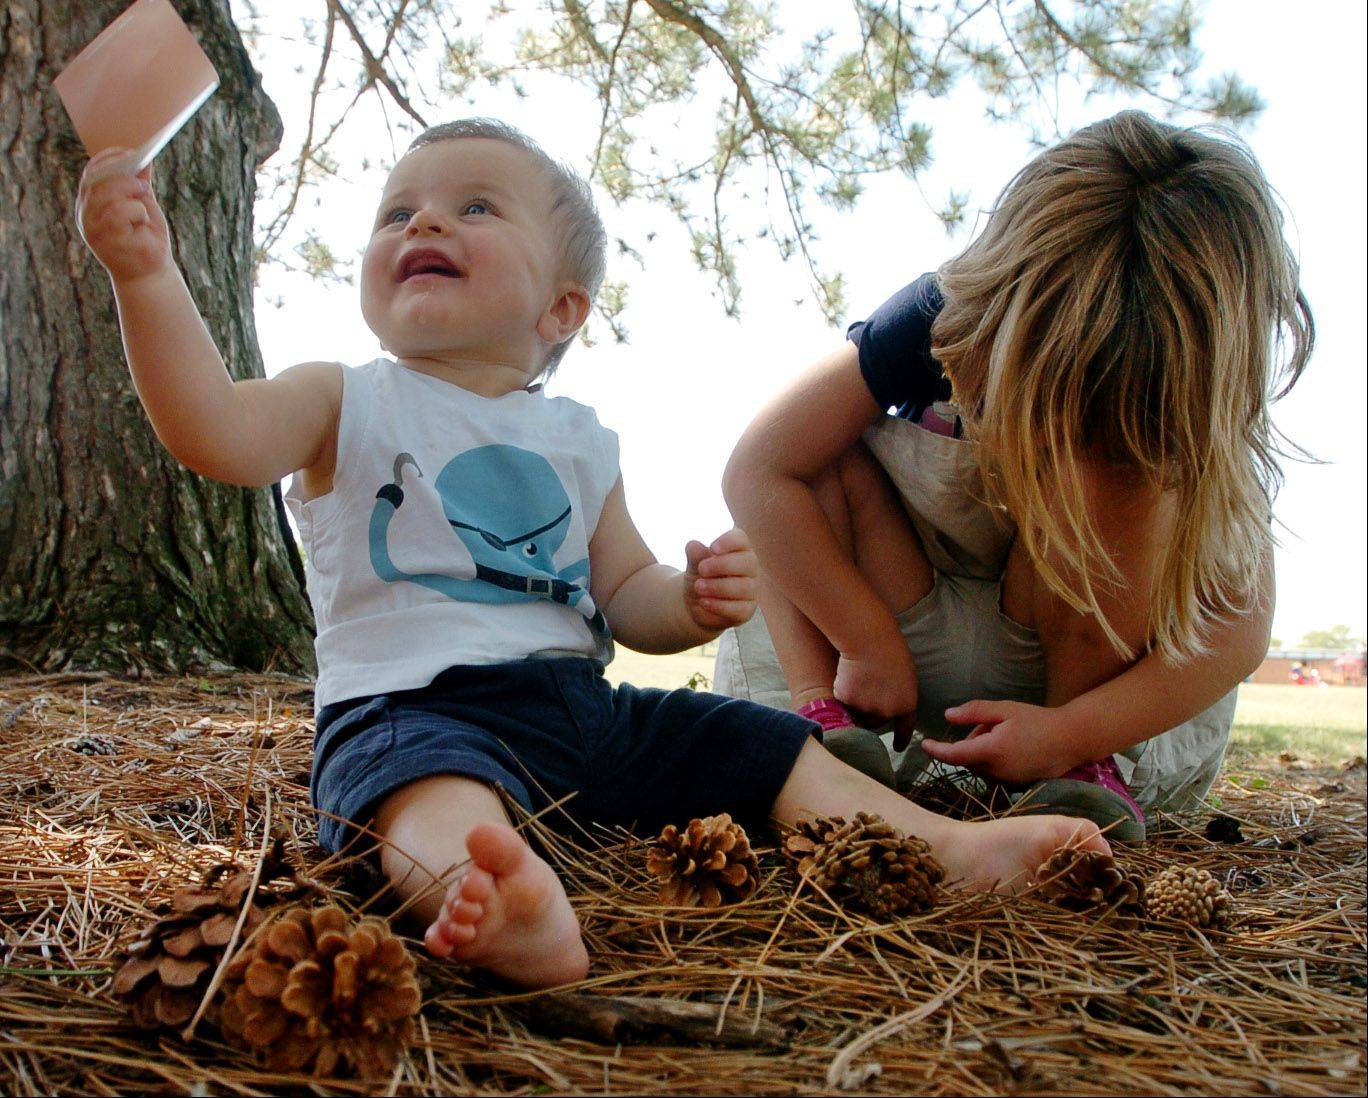 10-month-old Benjamin discovers pine cones with his sister Lily, that match his color swatch in Hoover Park during their nature hike.